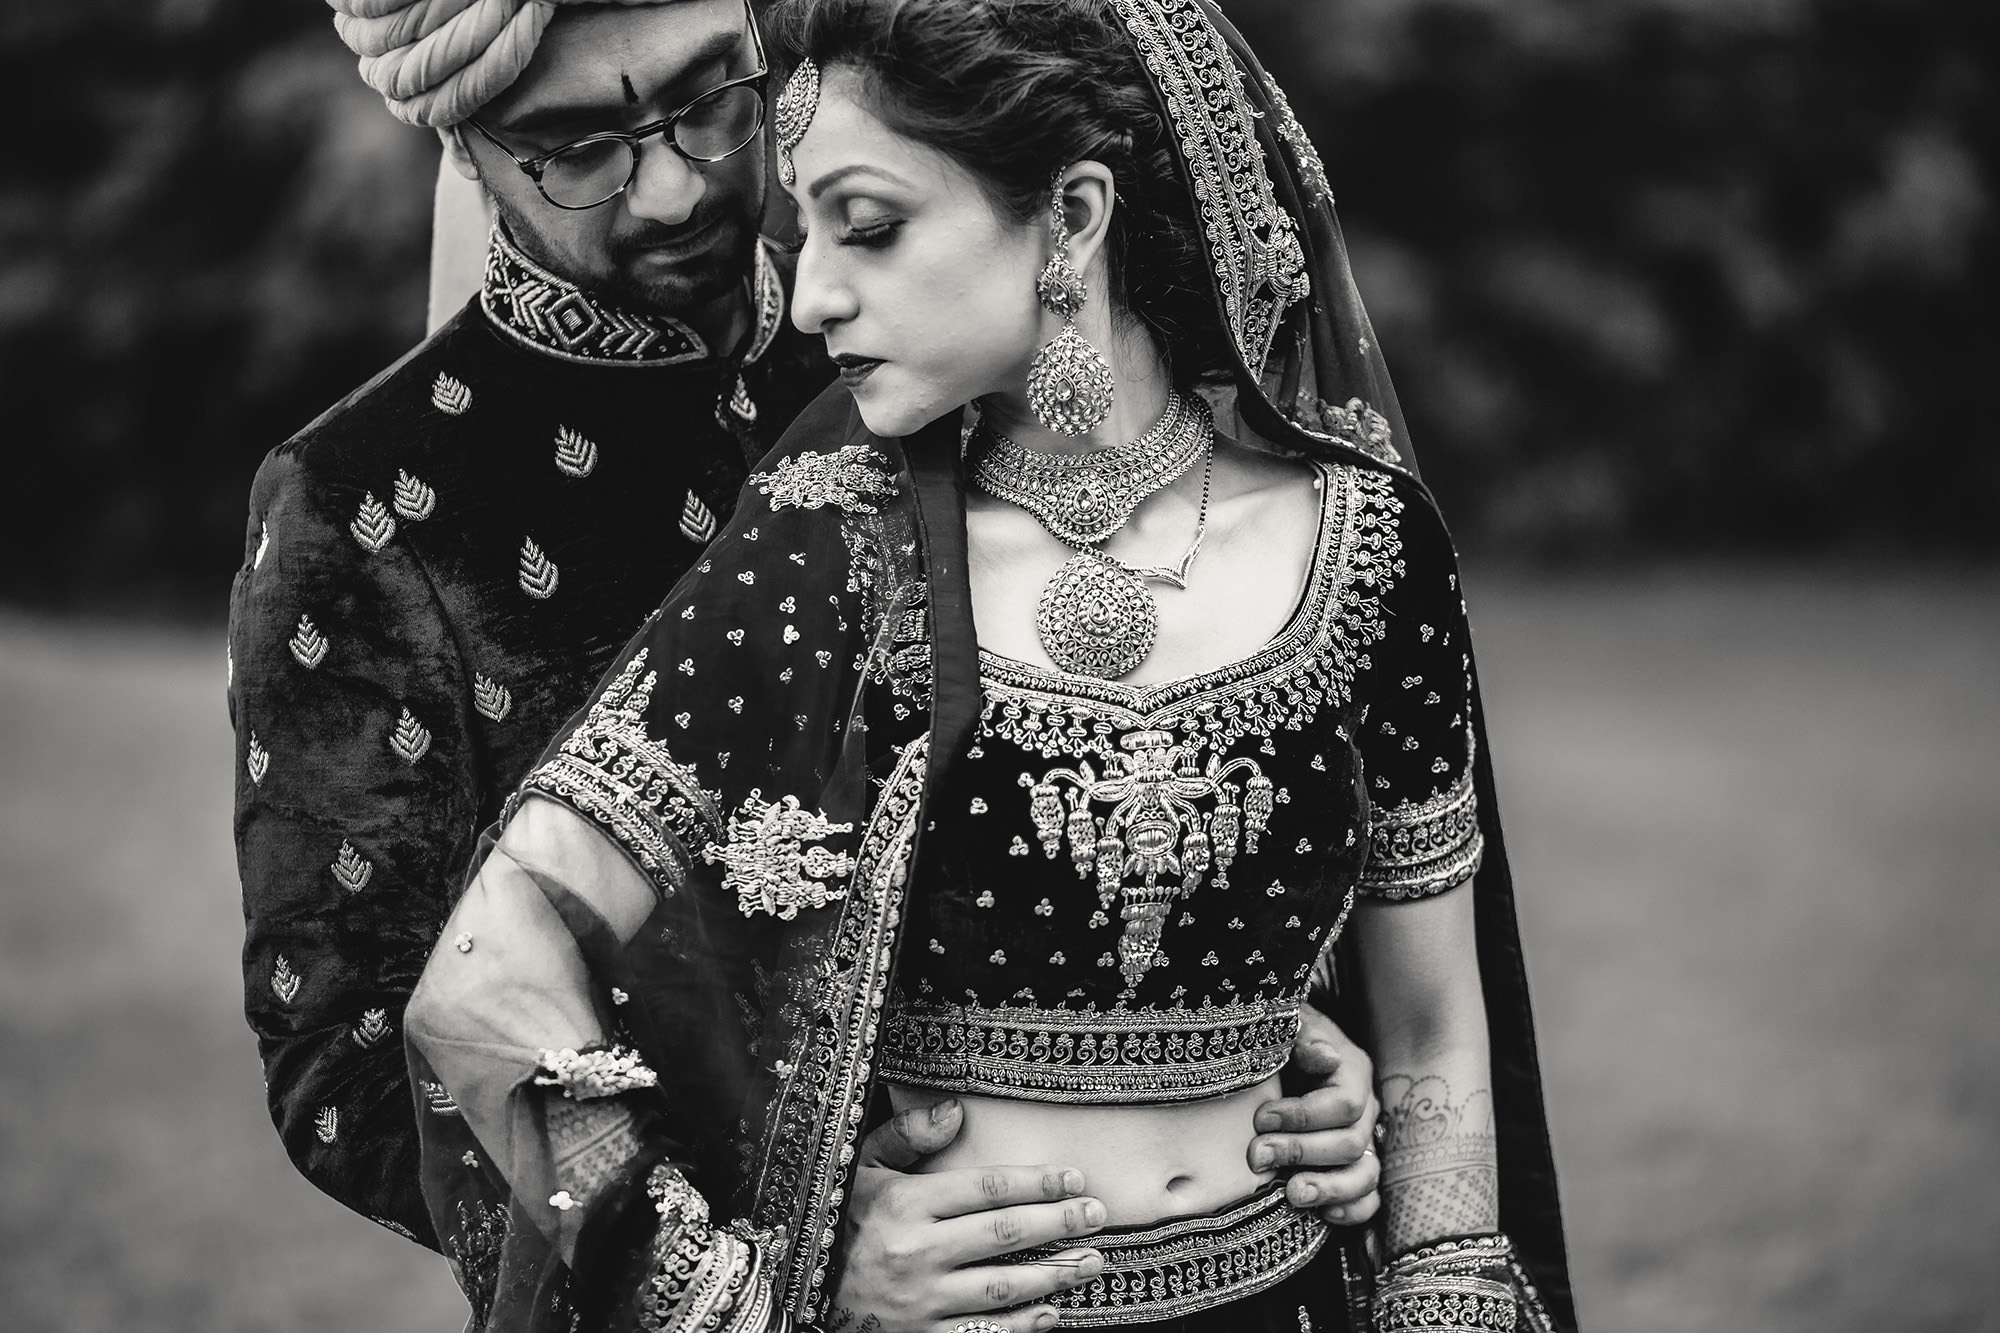 bride and groom portrait in black and white after hindu wedding ceremony